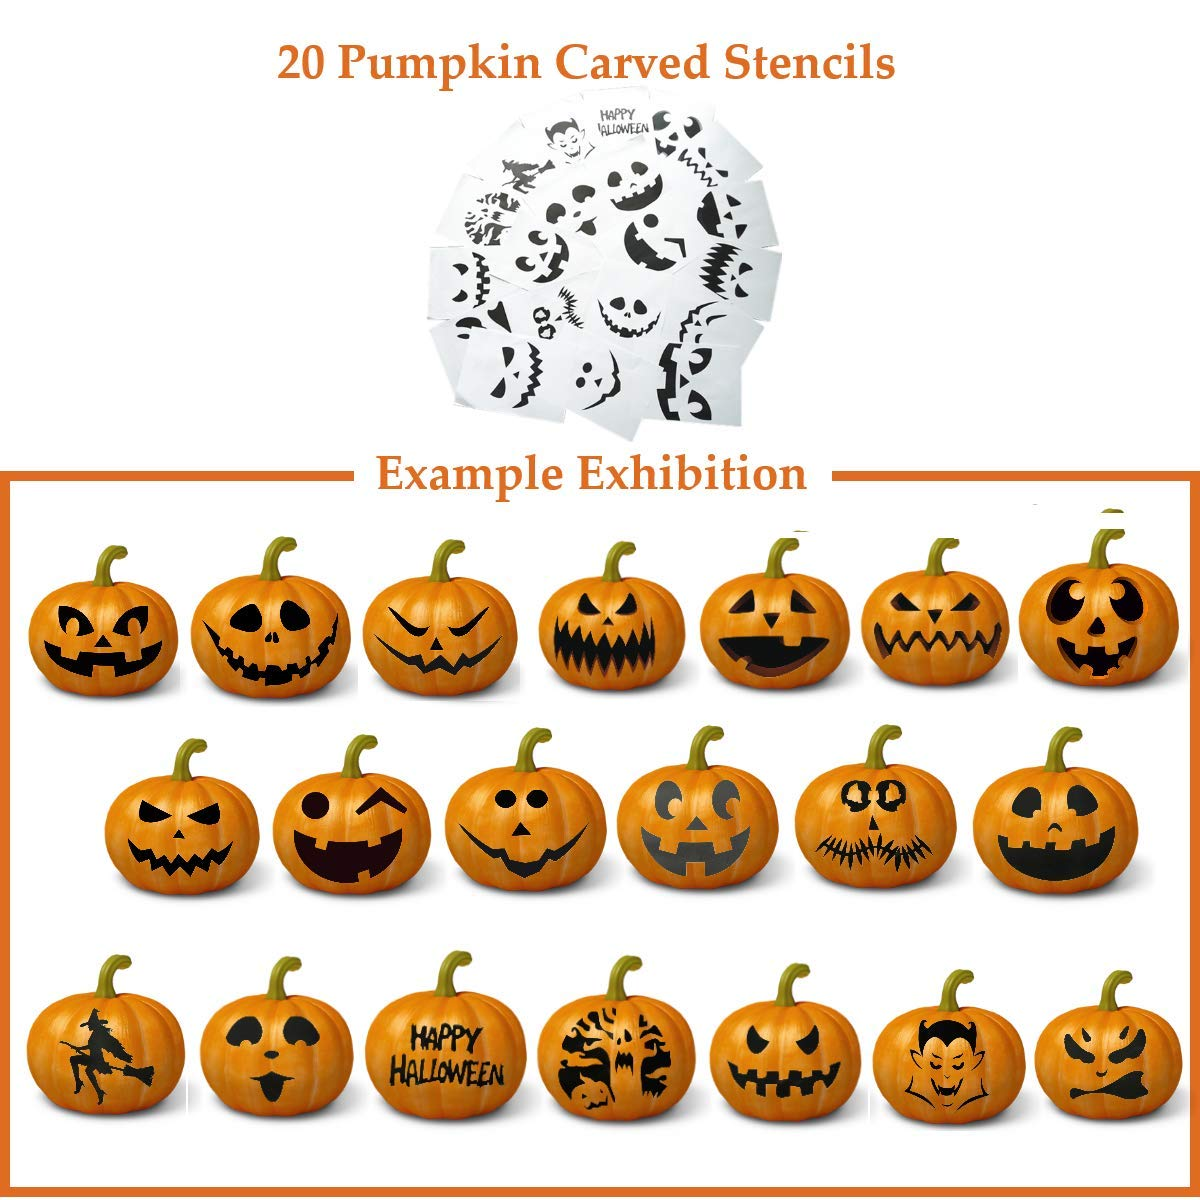 Professional Pumpkin Carving Tools Kit【Set of 4】Premium Heavy Duty Stainless Steel Knives for Easily Sculpt Halloween Jack-O-Lanterns with【Many Pumpkin Carved Stencils/Patterns/Templates】 by AUXIN (Image #3)